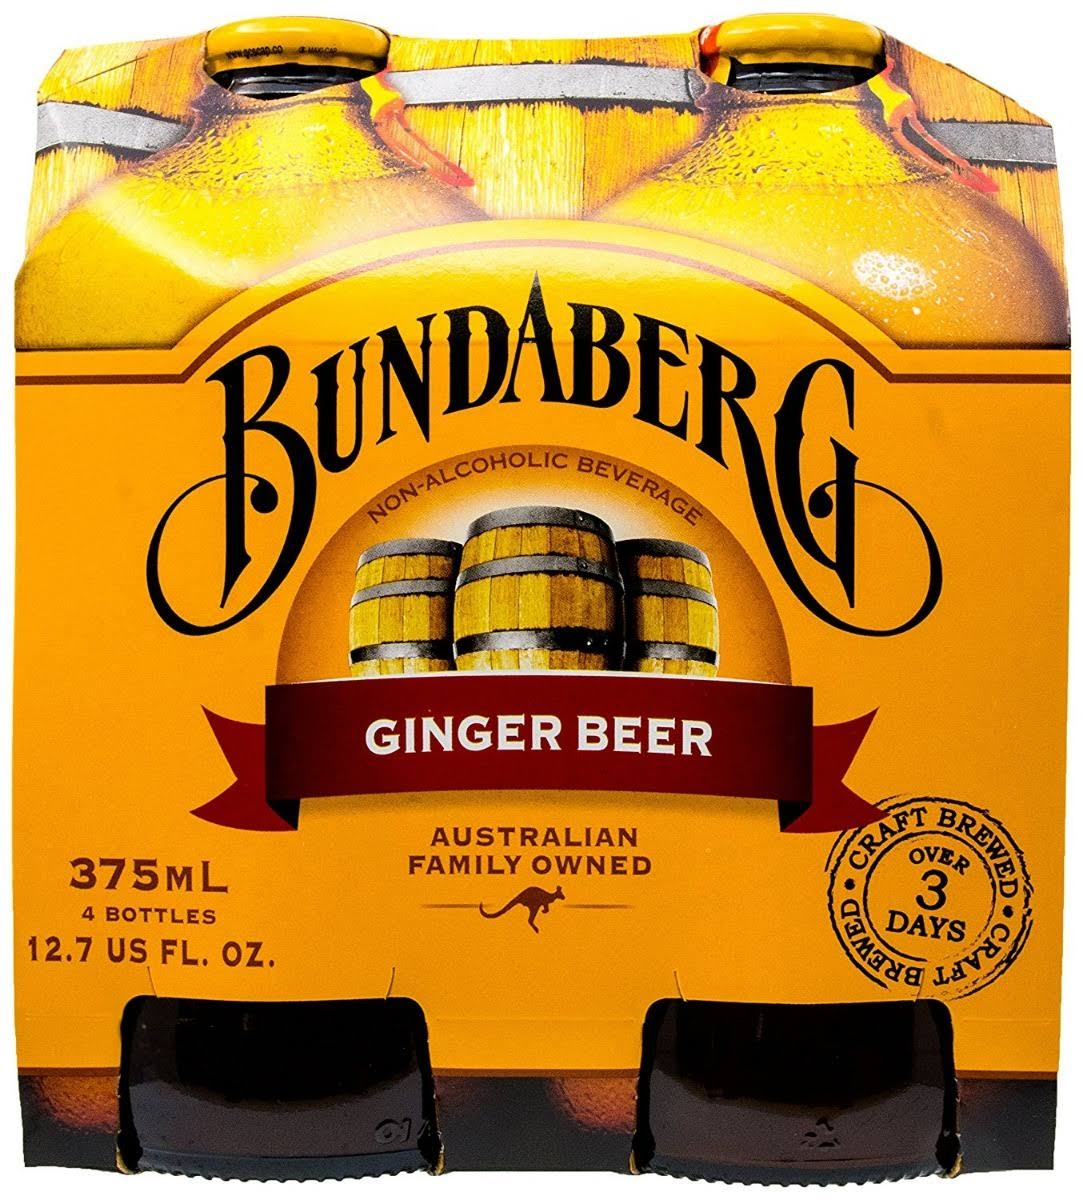 Bundaberg Ginger Beer - 4 pack, 12.7 fl oz each